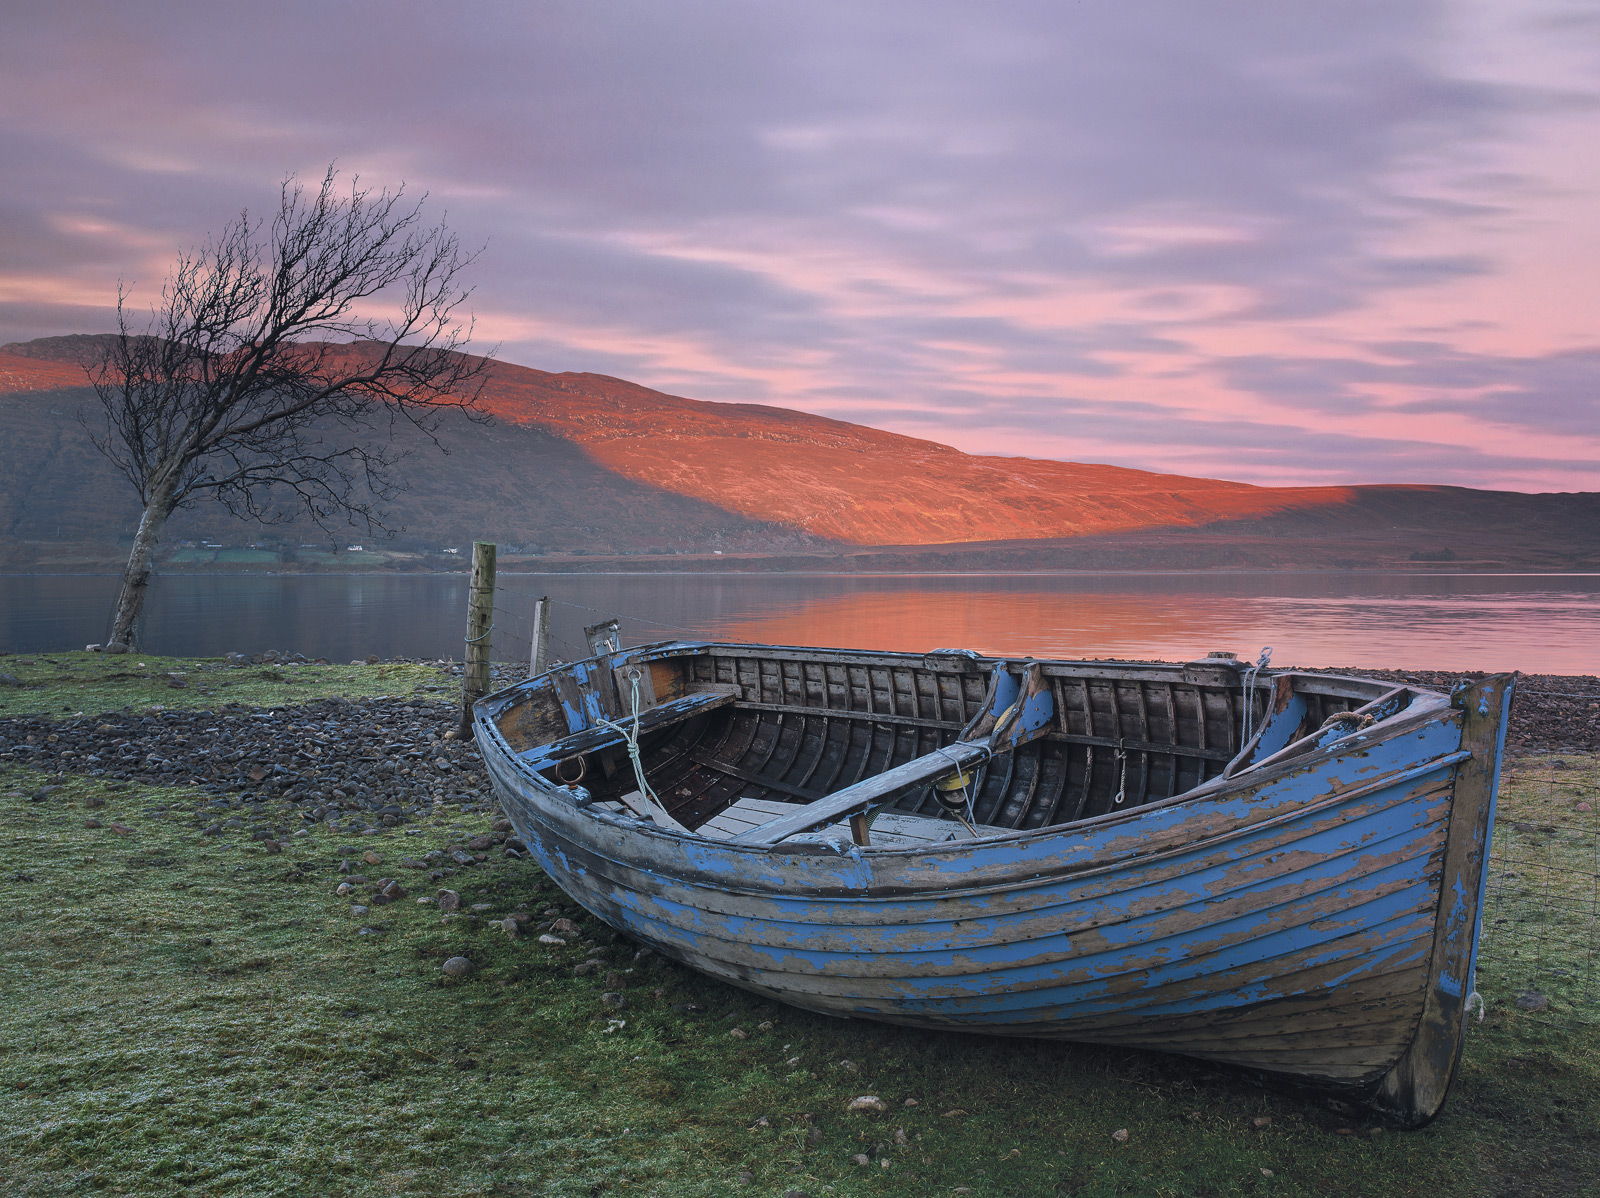 This old blue row boat seems to have been here for years and rarely moves but it is situated next to a single windblown old tree...